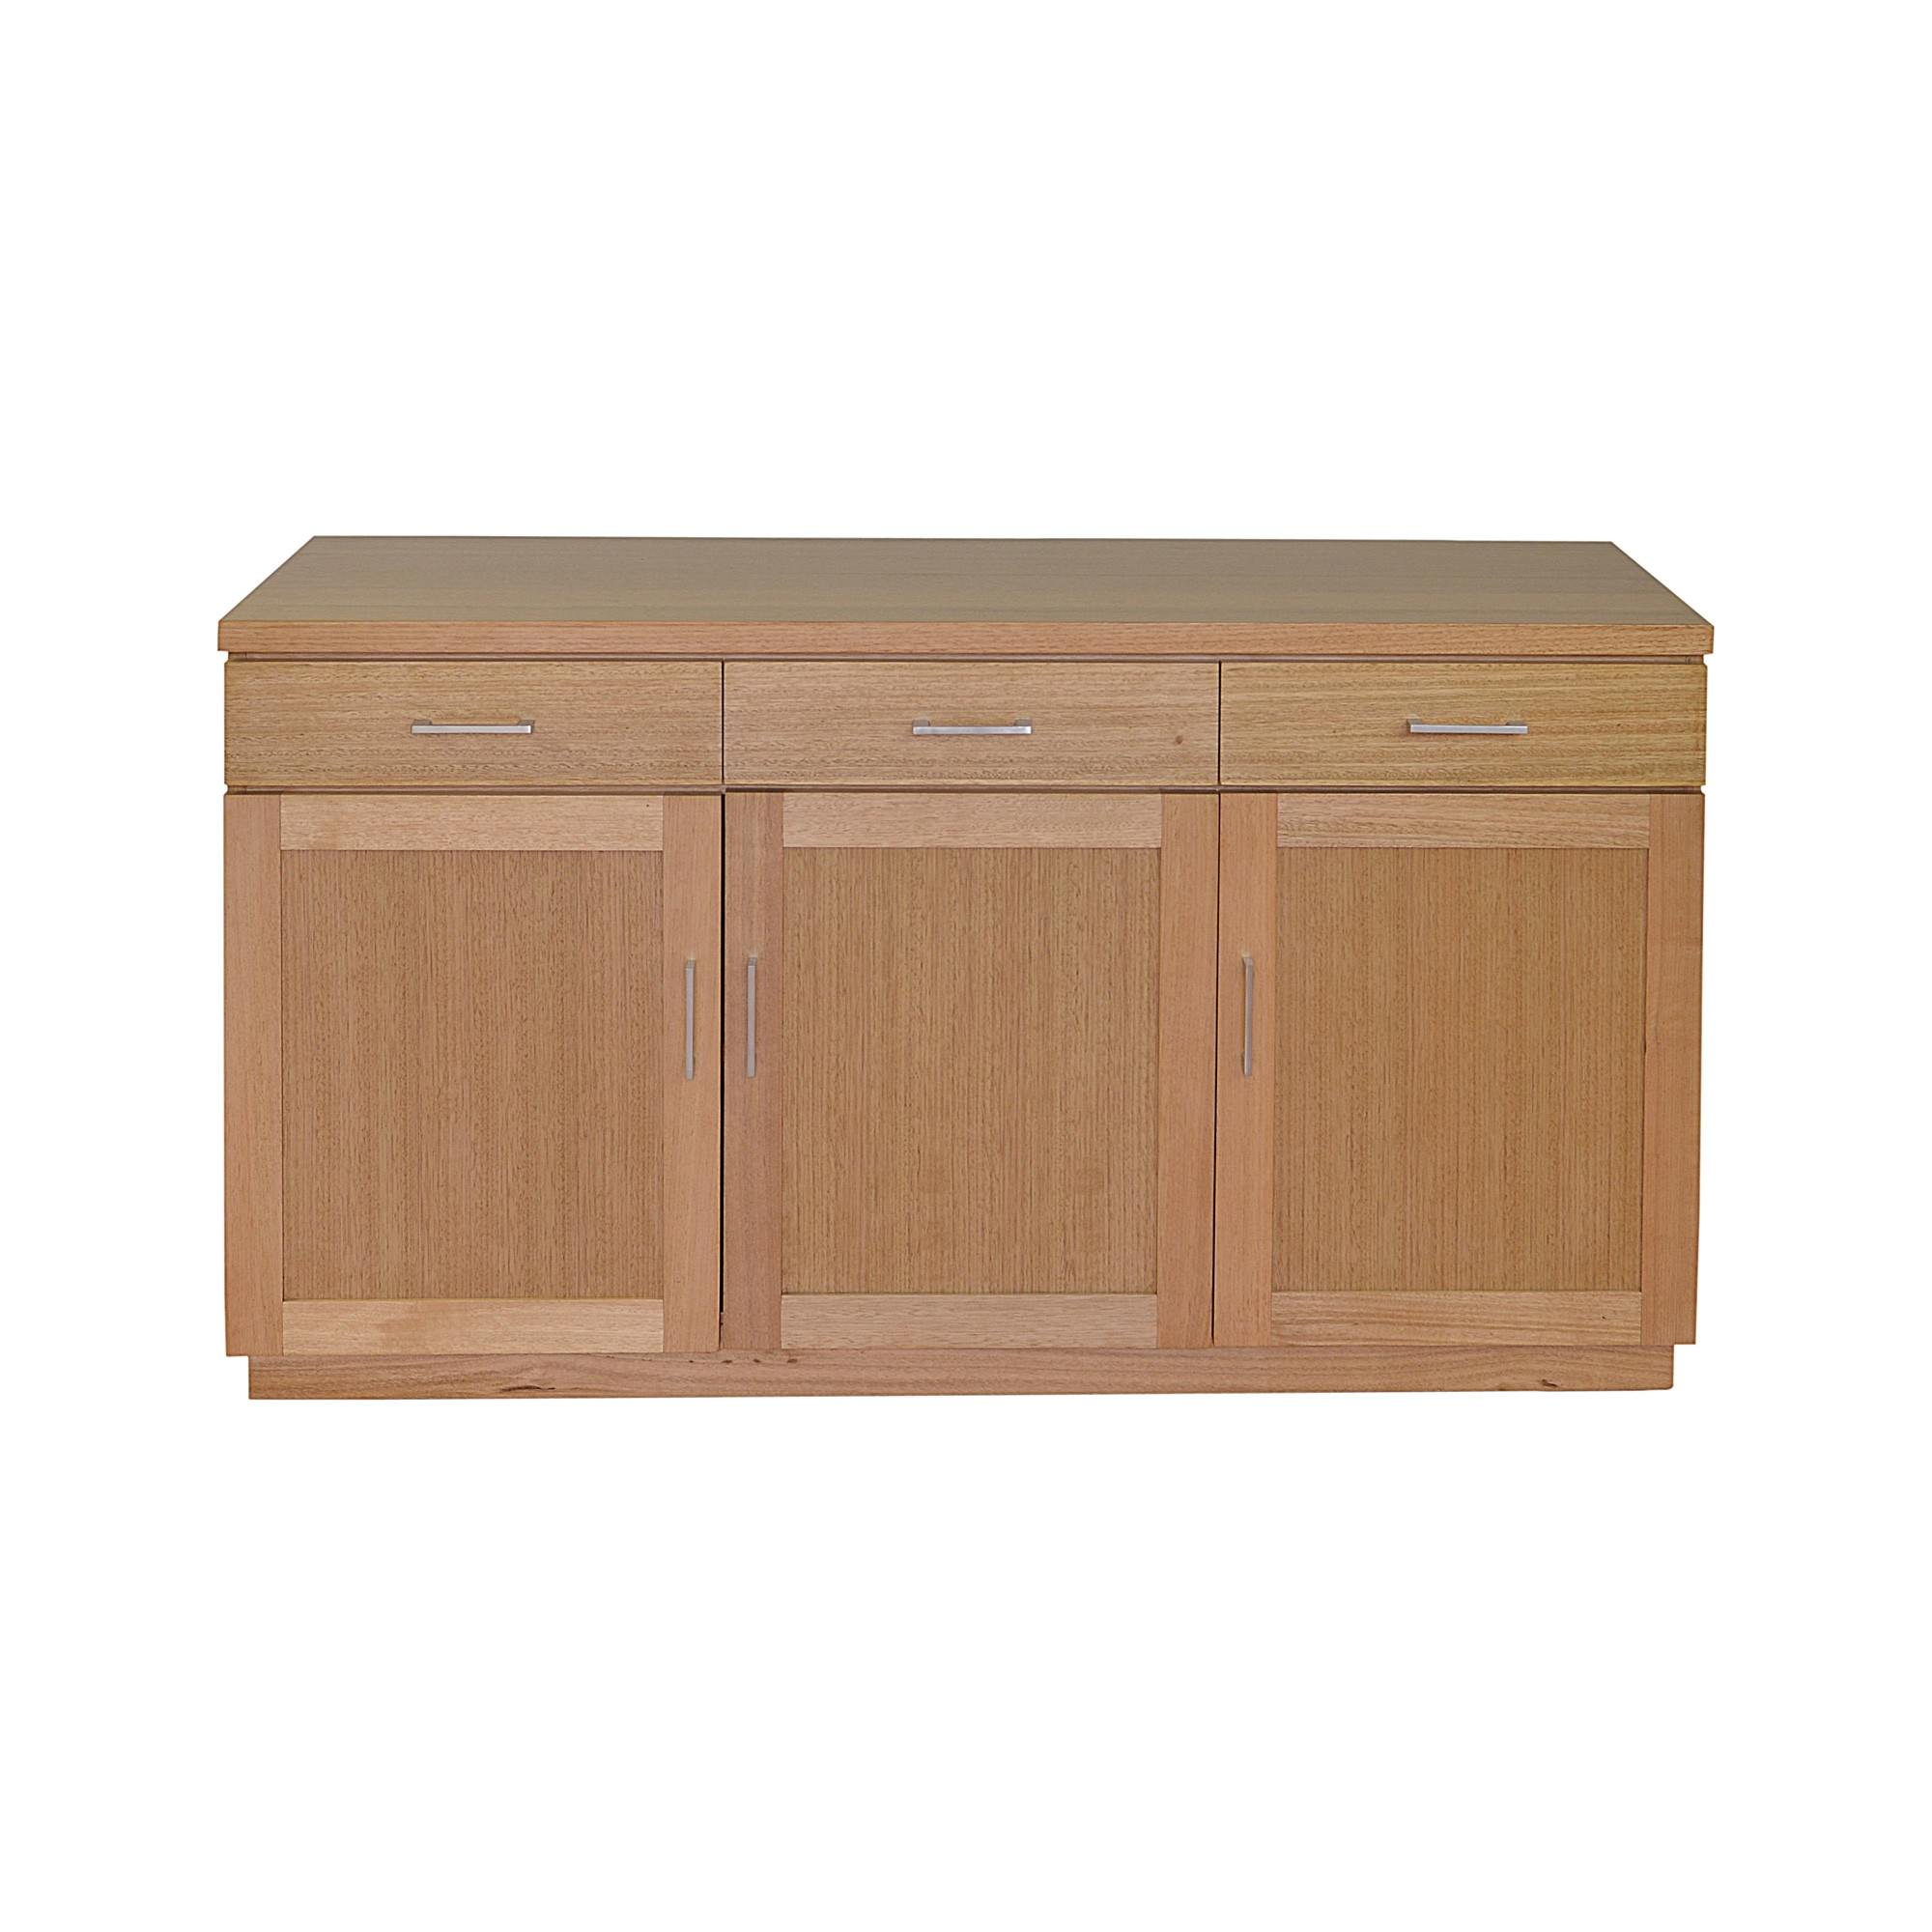 Moselia Tasmanian Oak Timber 3 Door 3 Drawer Buffet Table, 150cm, Wheat